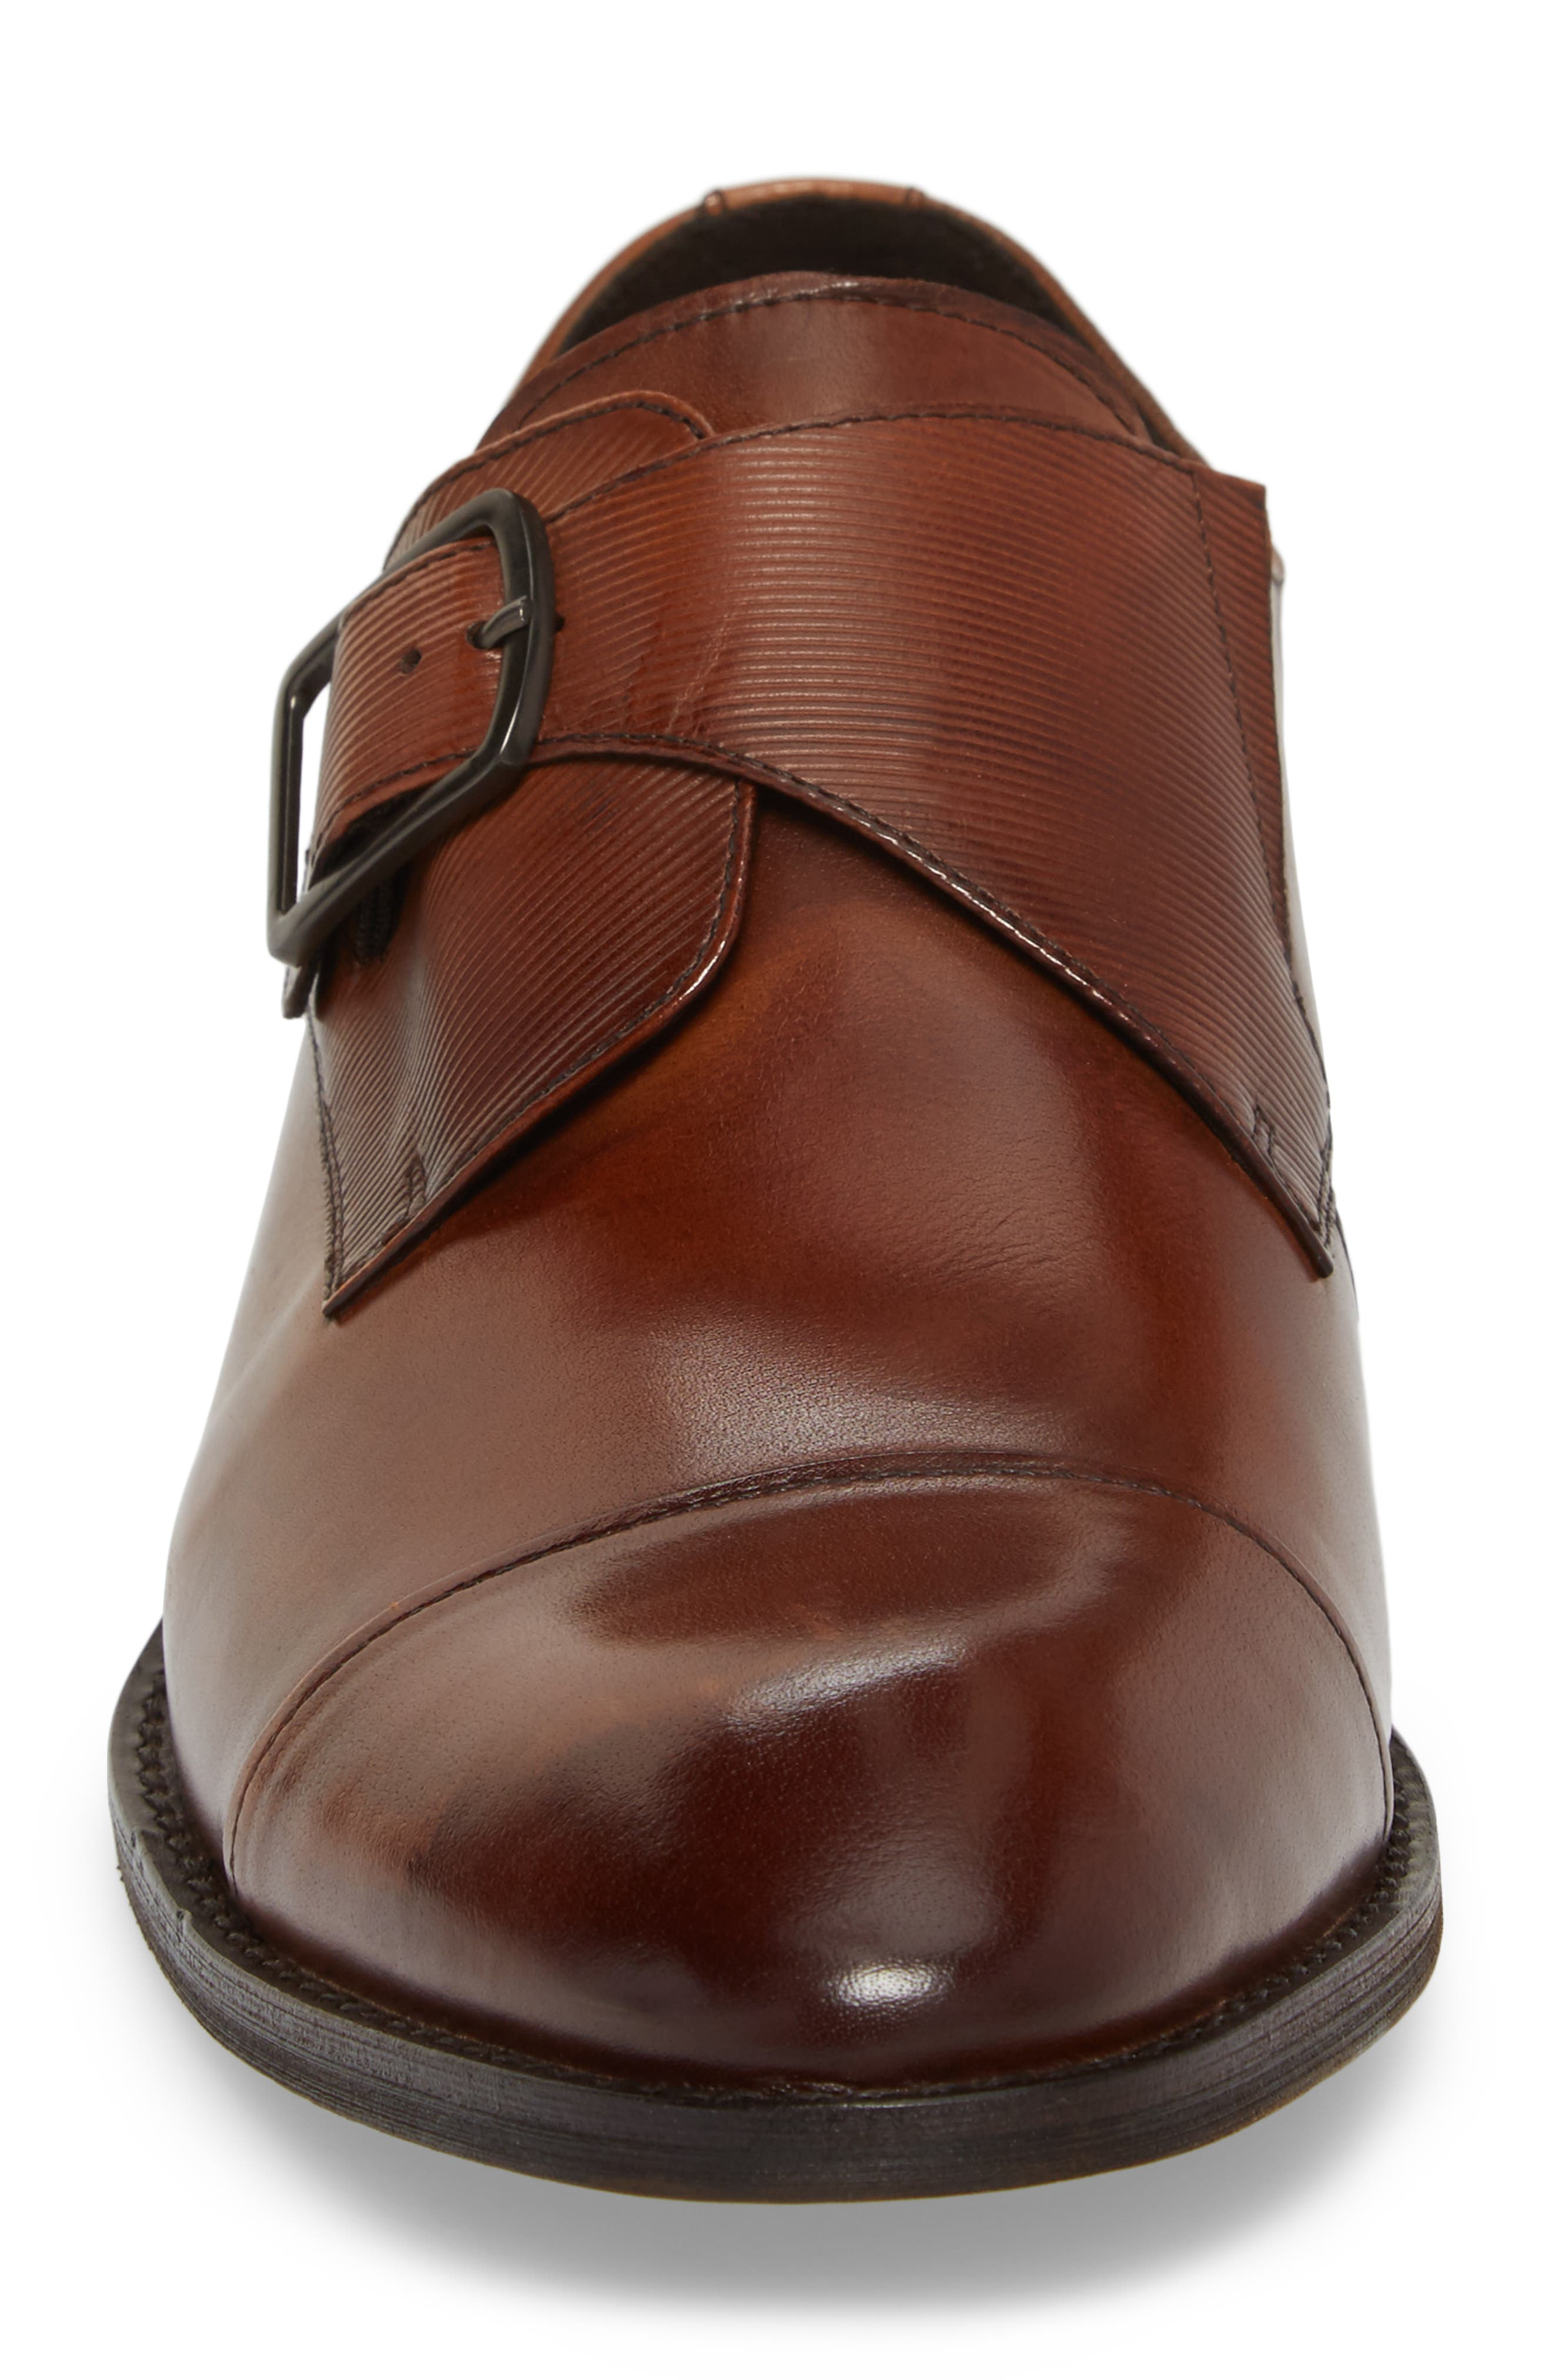 KENNETH COLE NEW YORK,                             Courage Monk Strap Shoe,                             Alternate thumbnail 4, color,                             200